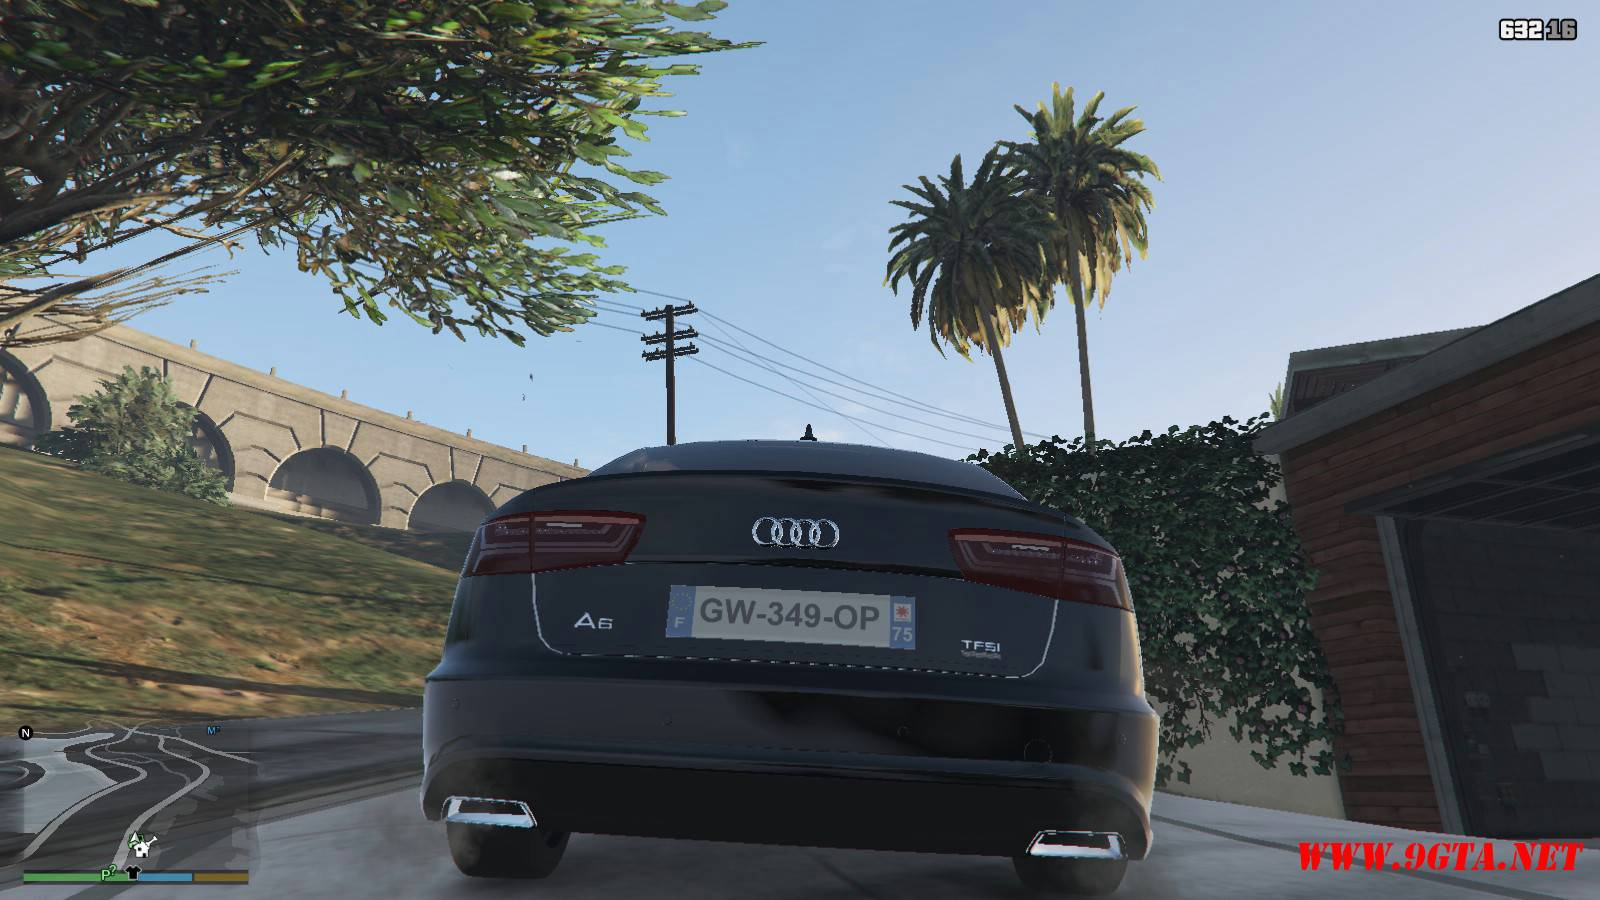 Audi A6 Mod For GTA5 (5)